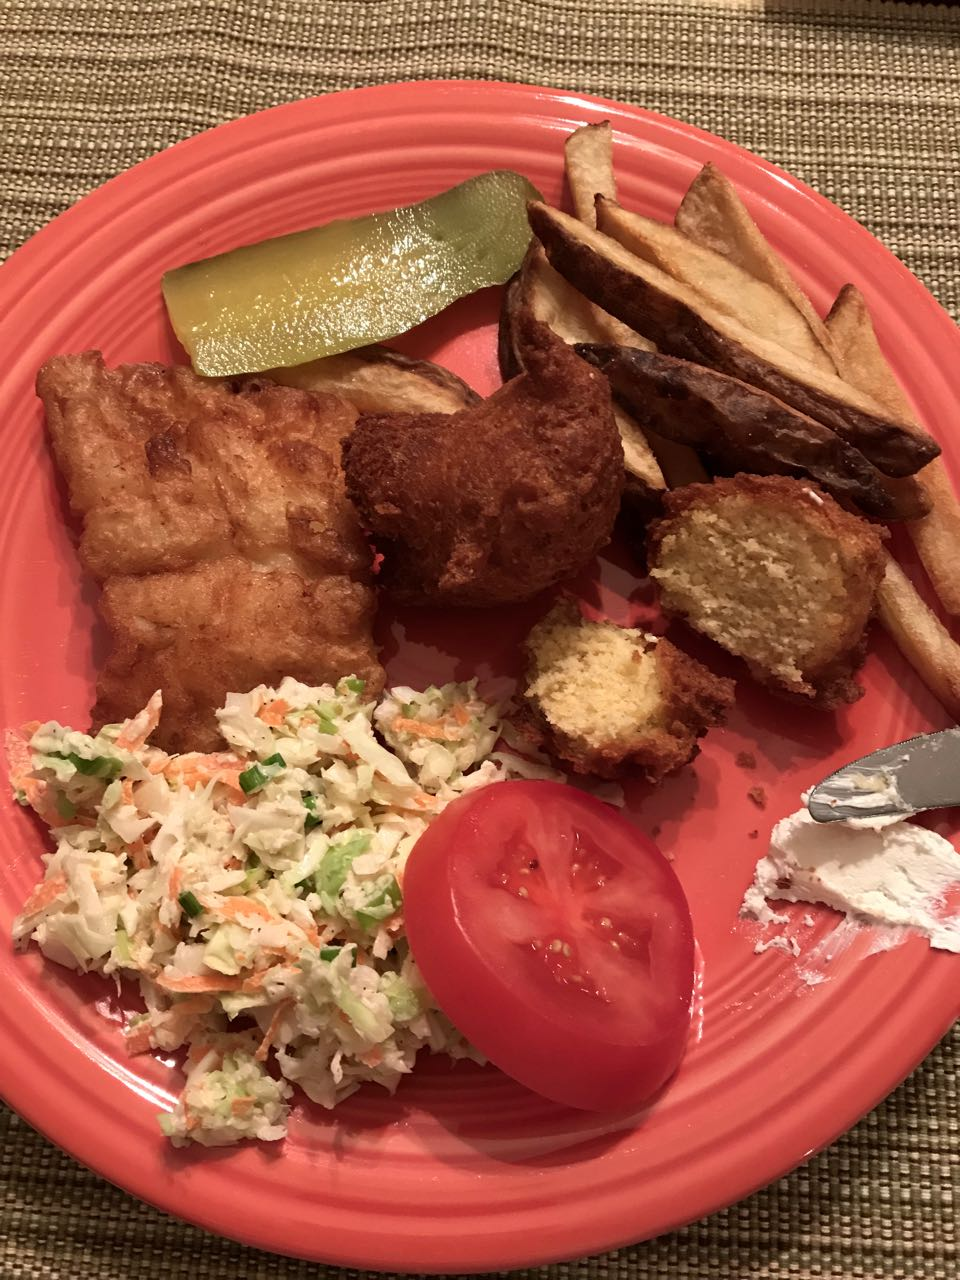 Plate of fried food.jpg